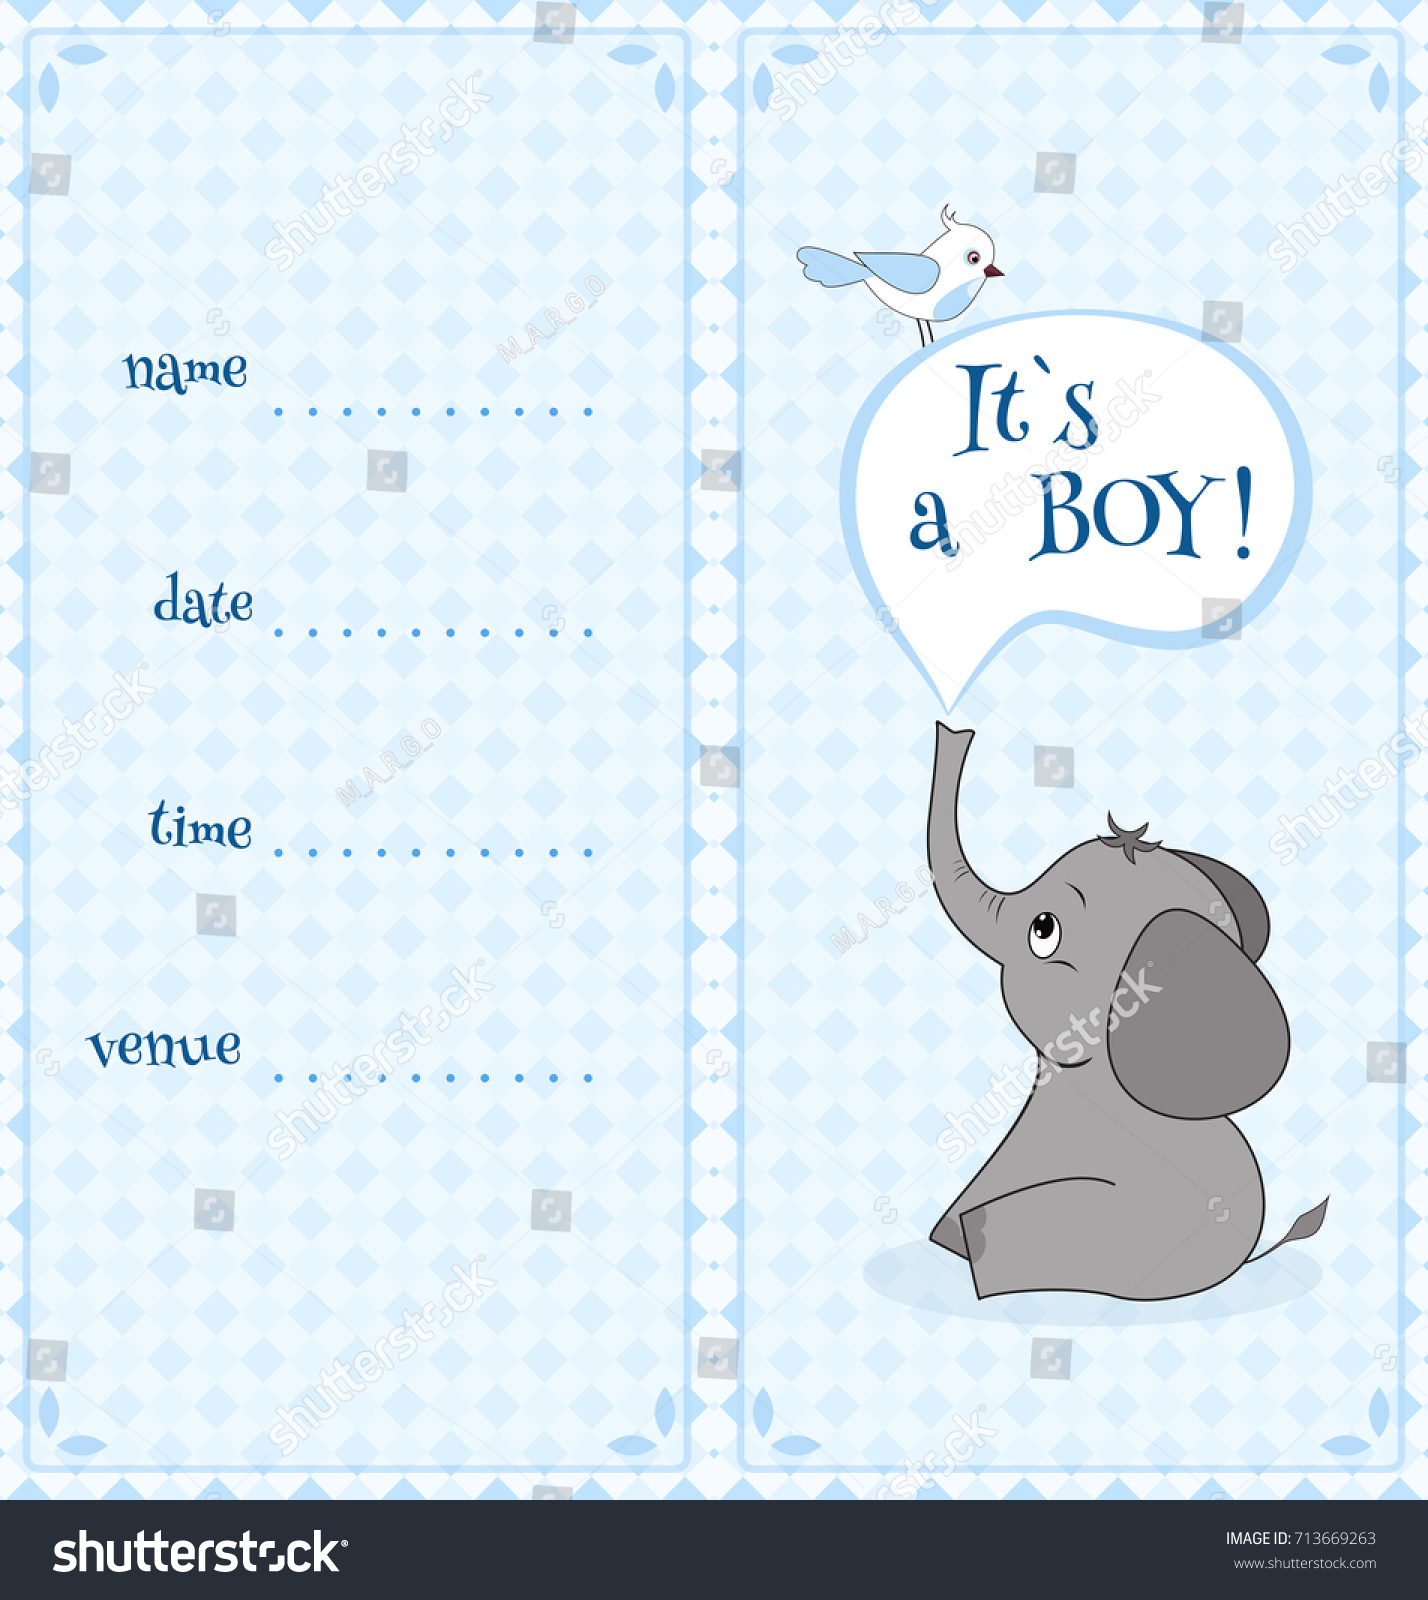 Baby Shower Invitation Card Cute Funny Stock Vector